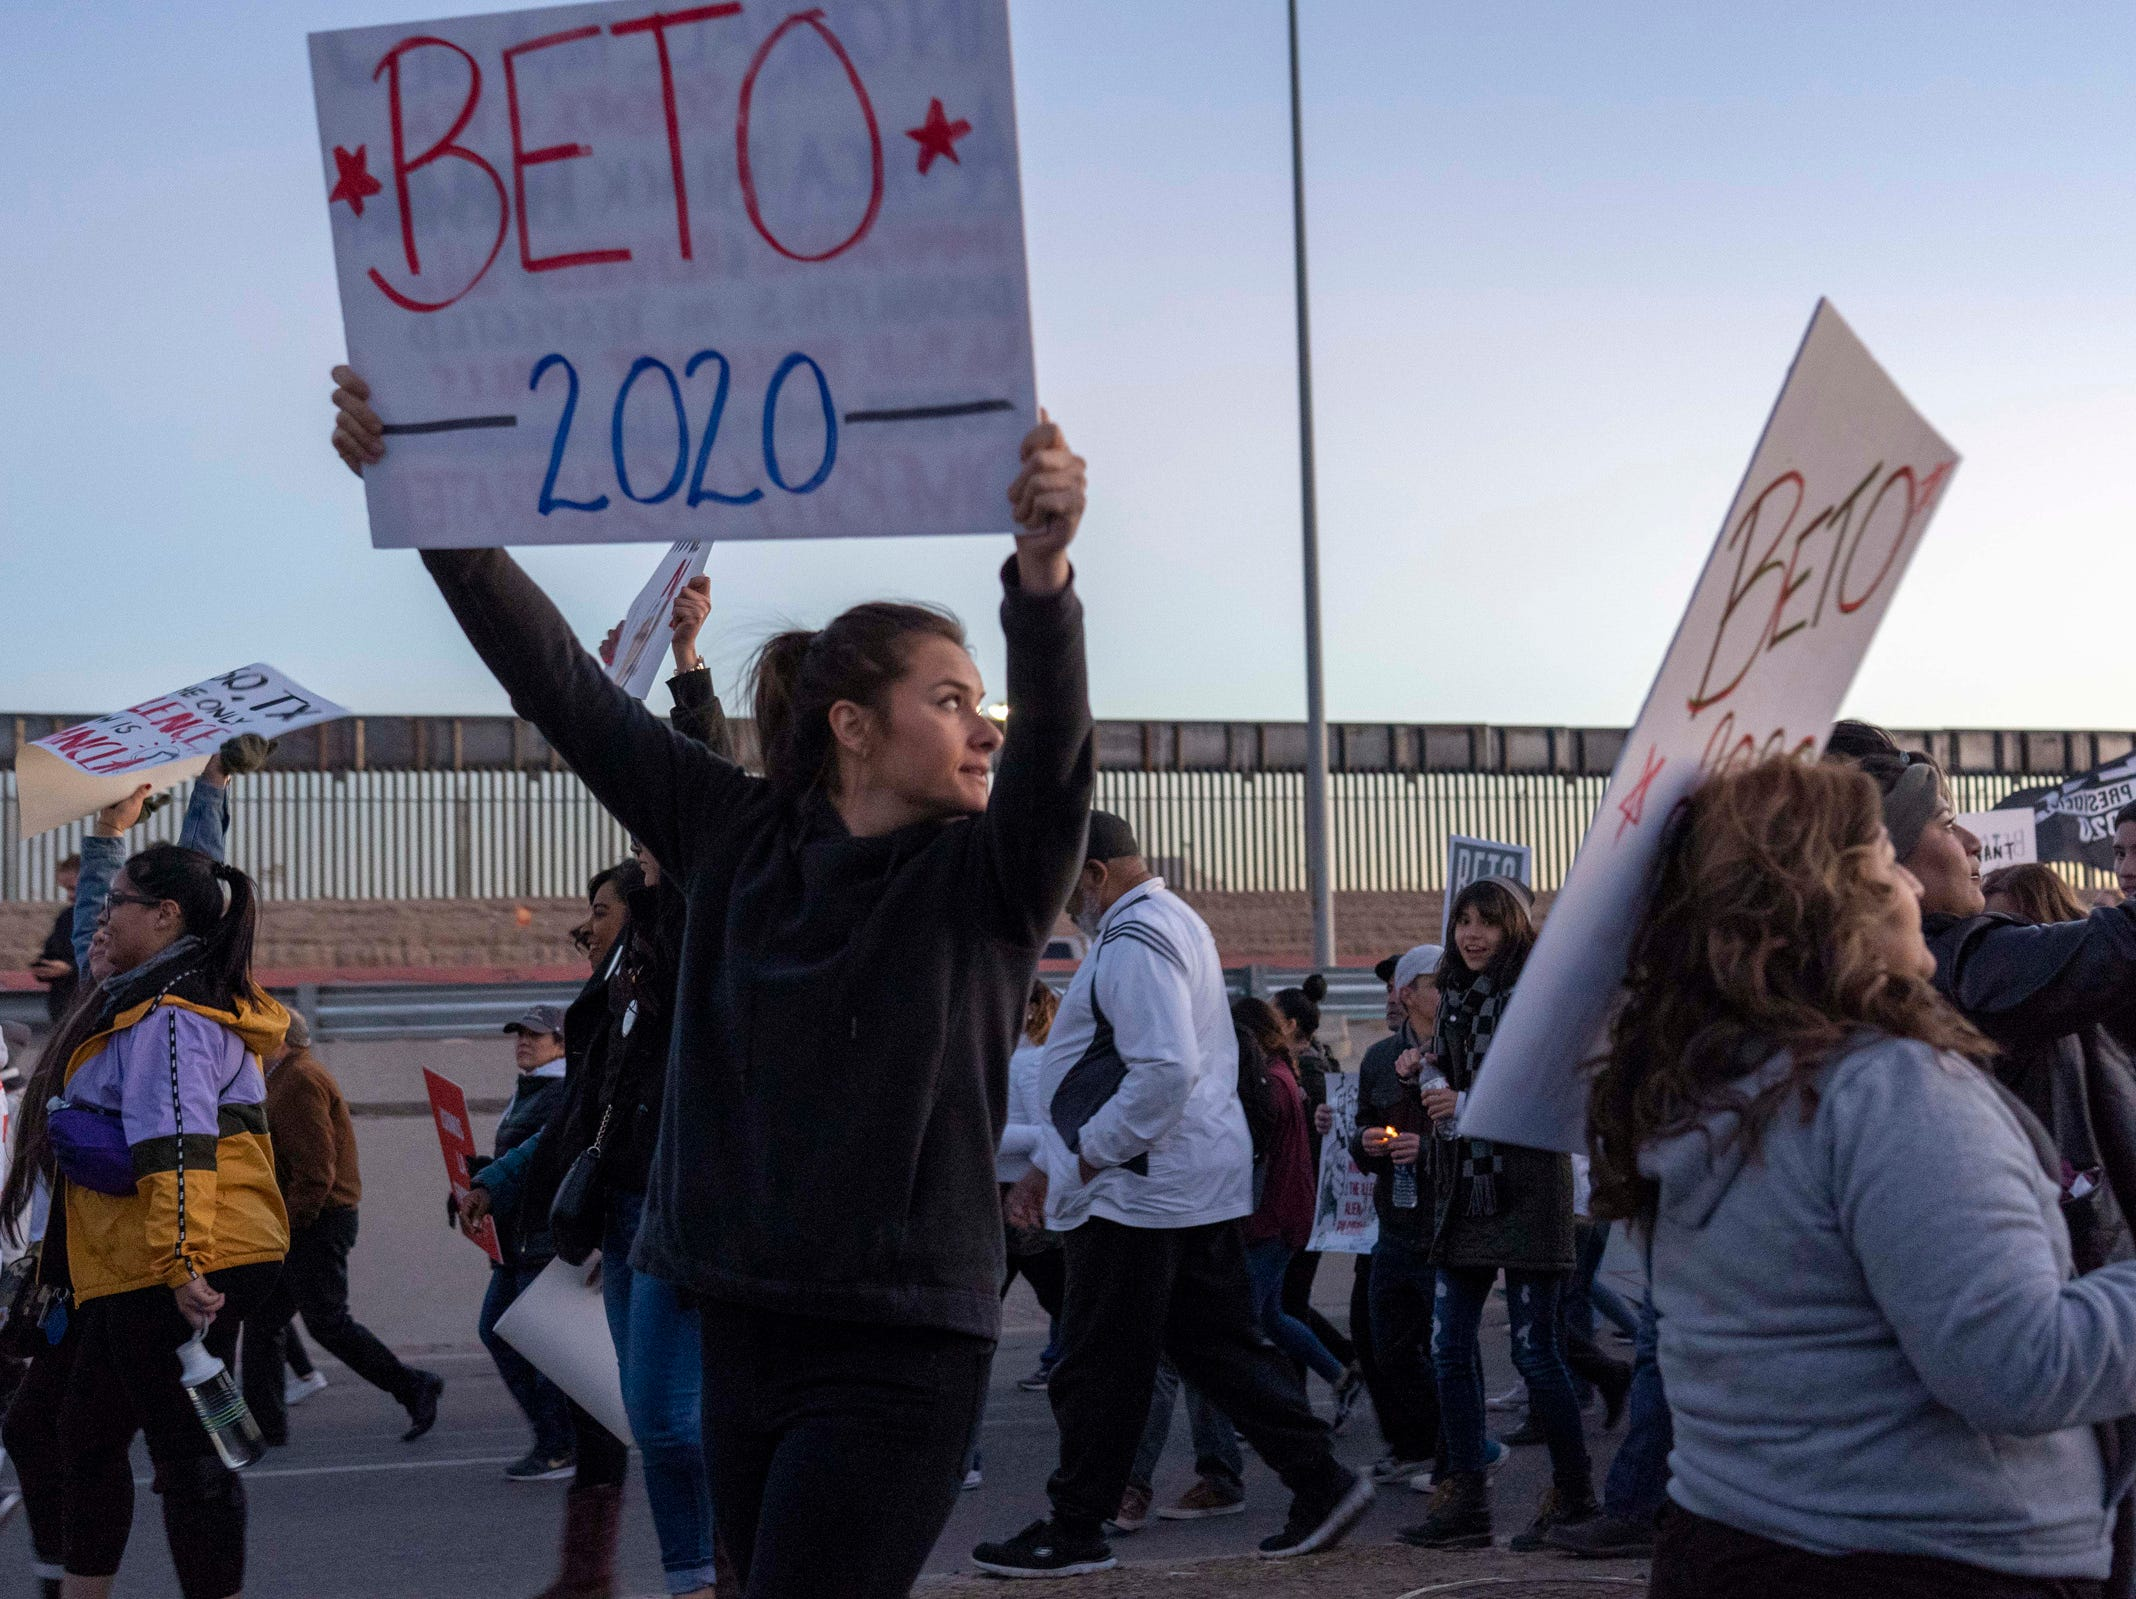 2/11/19 6:05:00 PM -- El Paso, TX, U.S.A  -- A counter-rally led by former U.S. Senate candidate Beto O'Rourke joined the March for Truth with hundreds of people along with Border Network for Human Rights, Women's March, to protest against President Trump campaign rally near El Paso County Coliseum on Feb. 11, 2019.